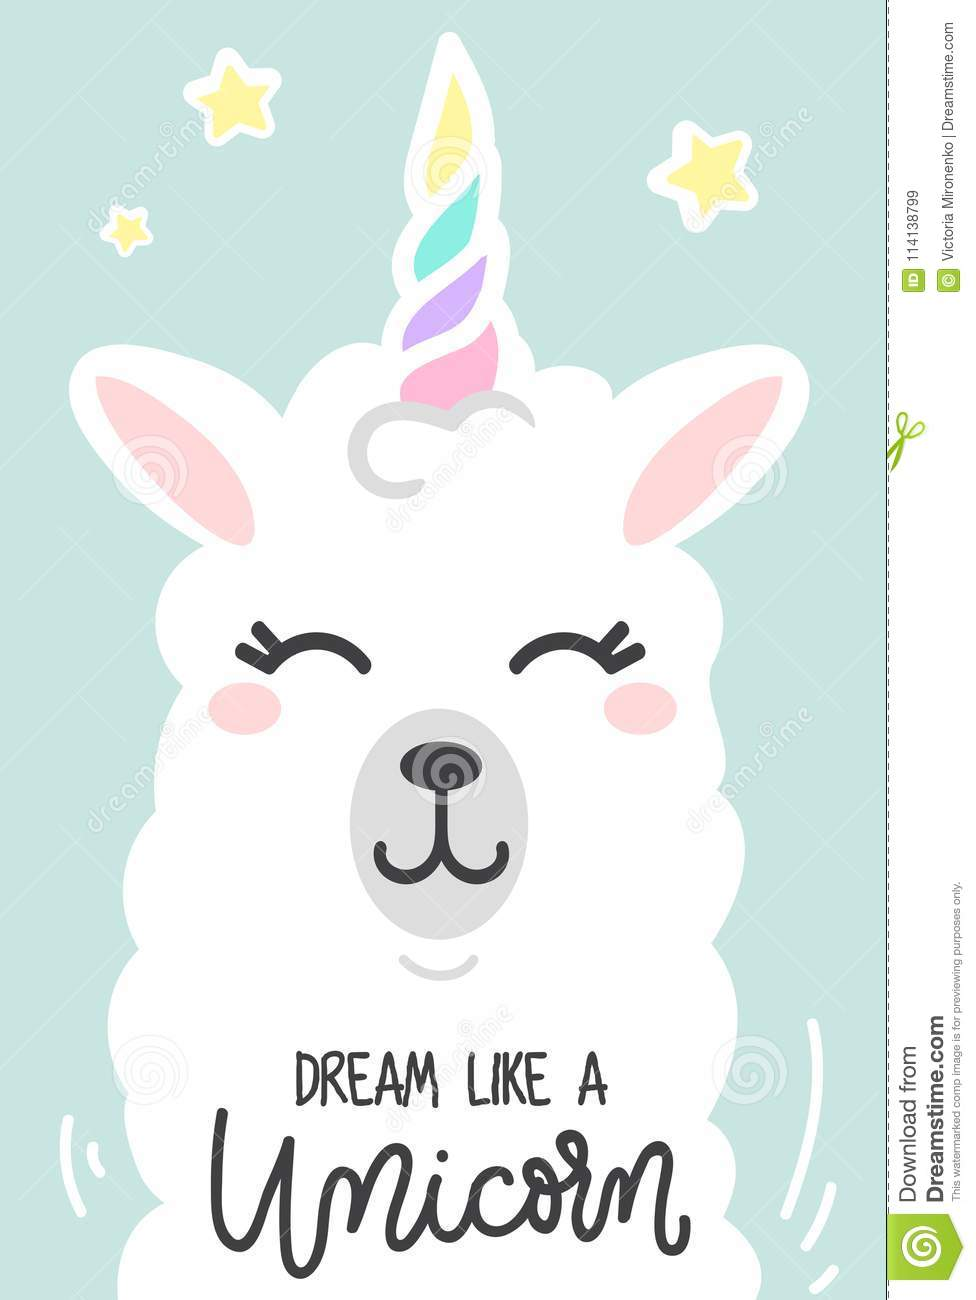 Dream like a unicorn inspirational poster with llama and stars.